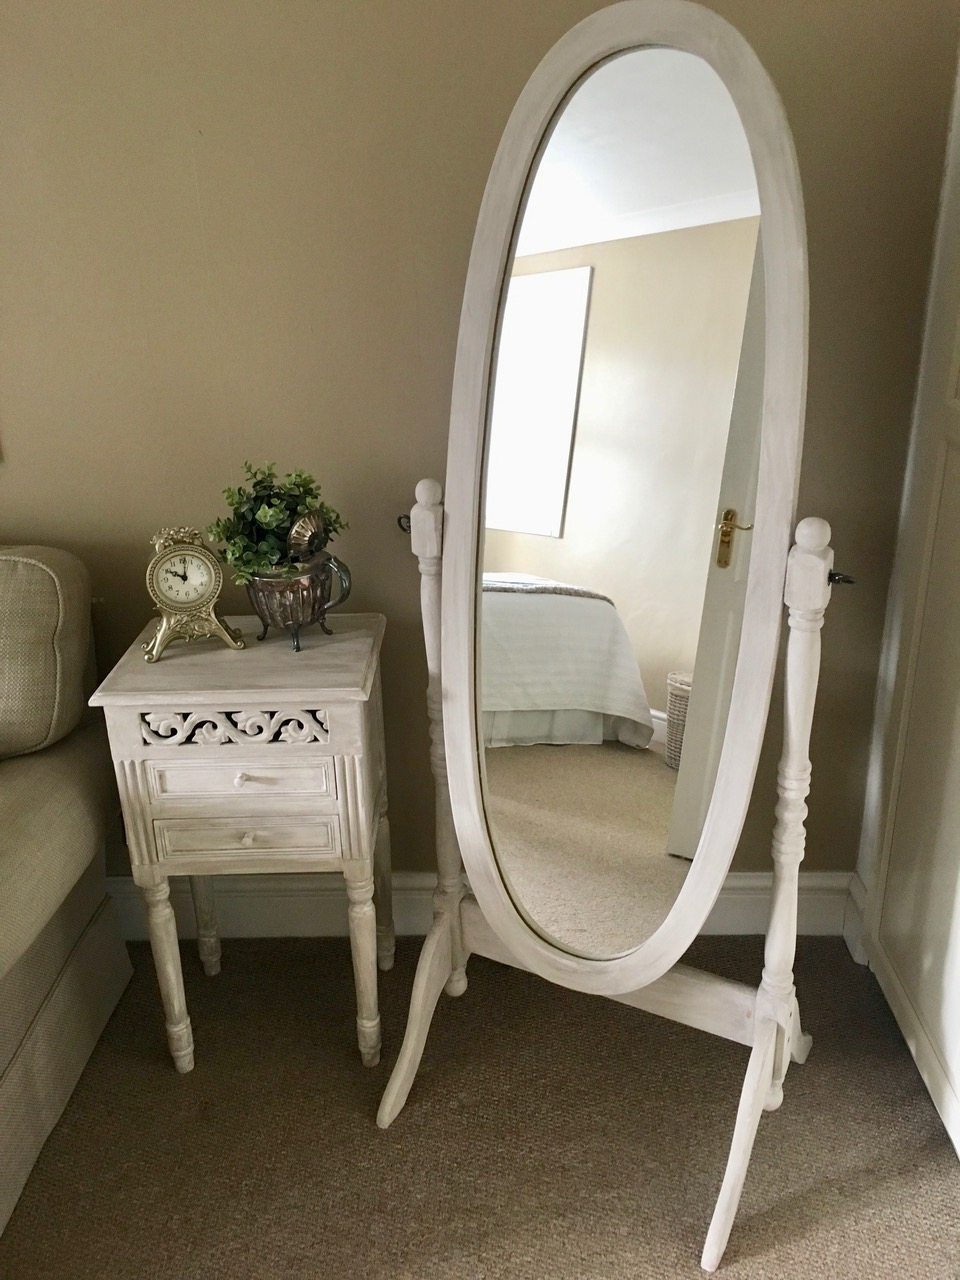 Bedside table & mirror